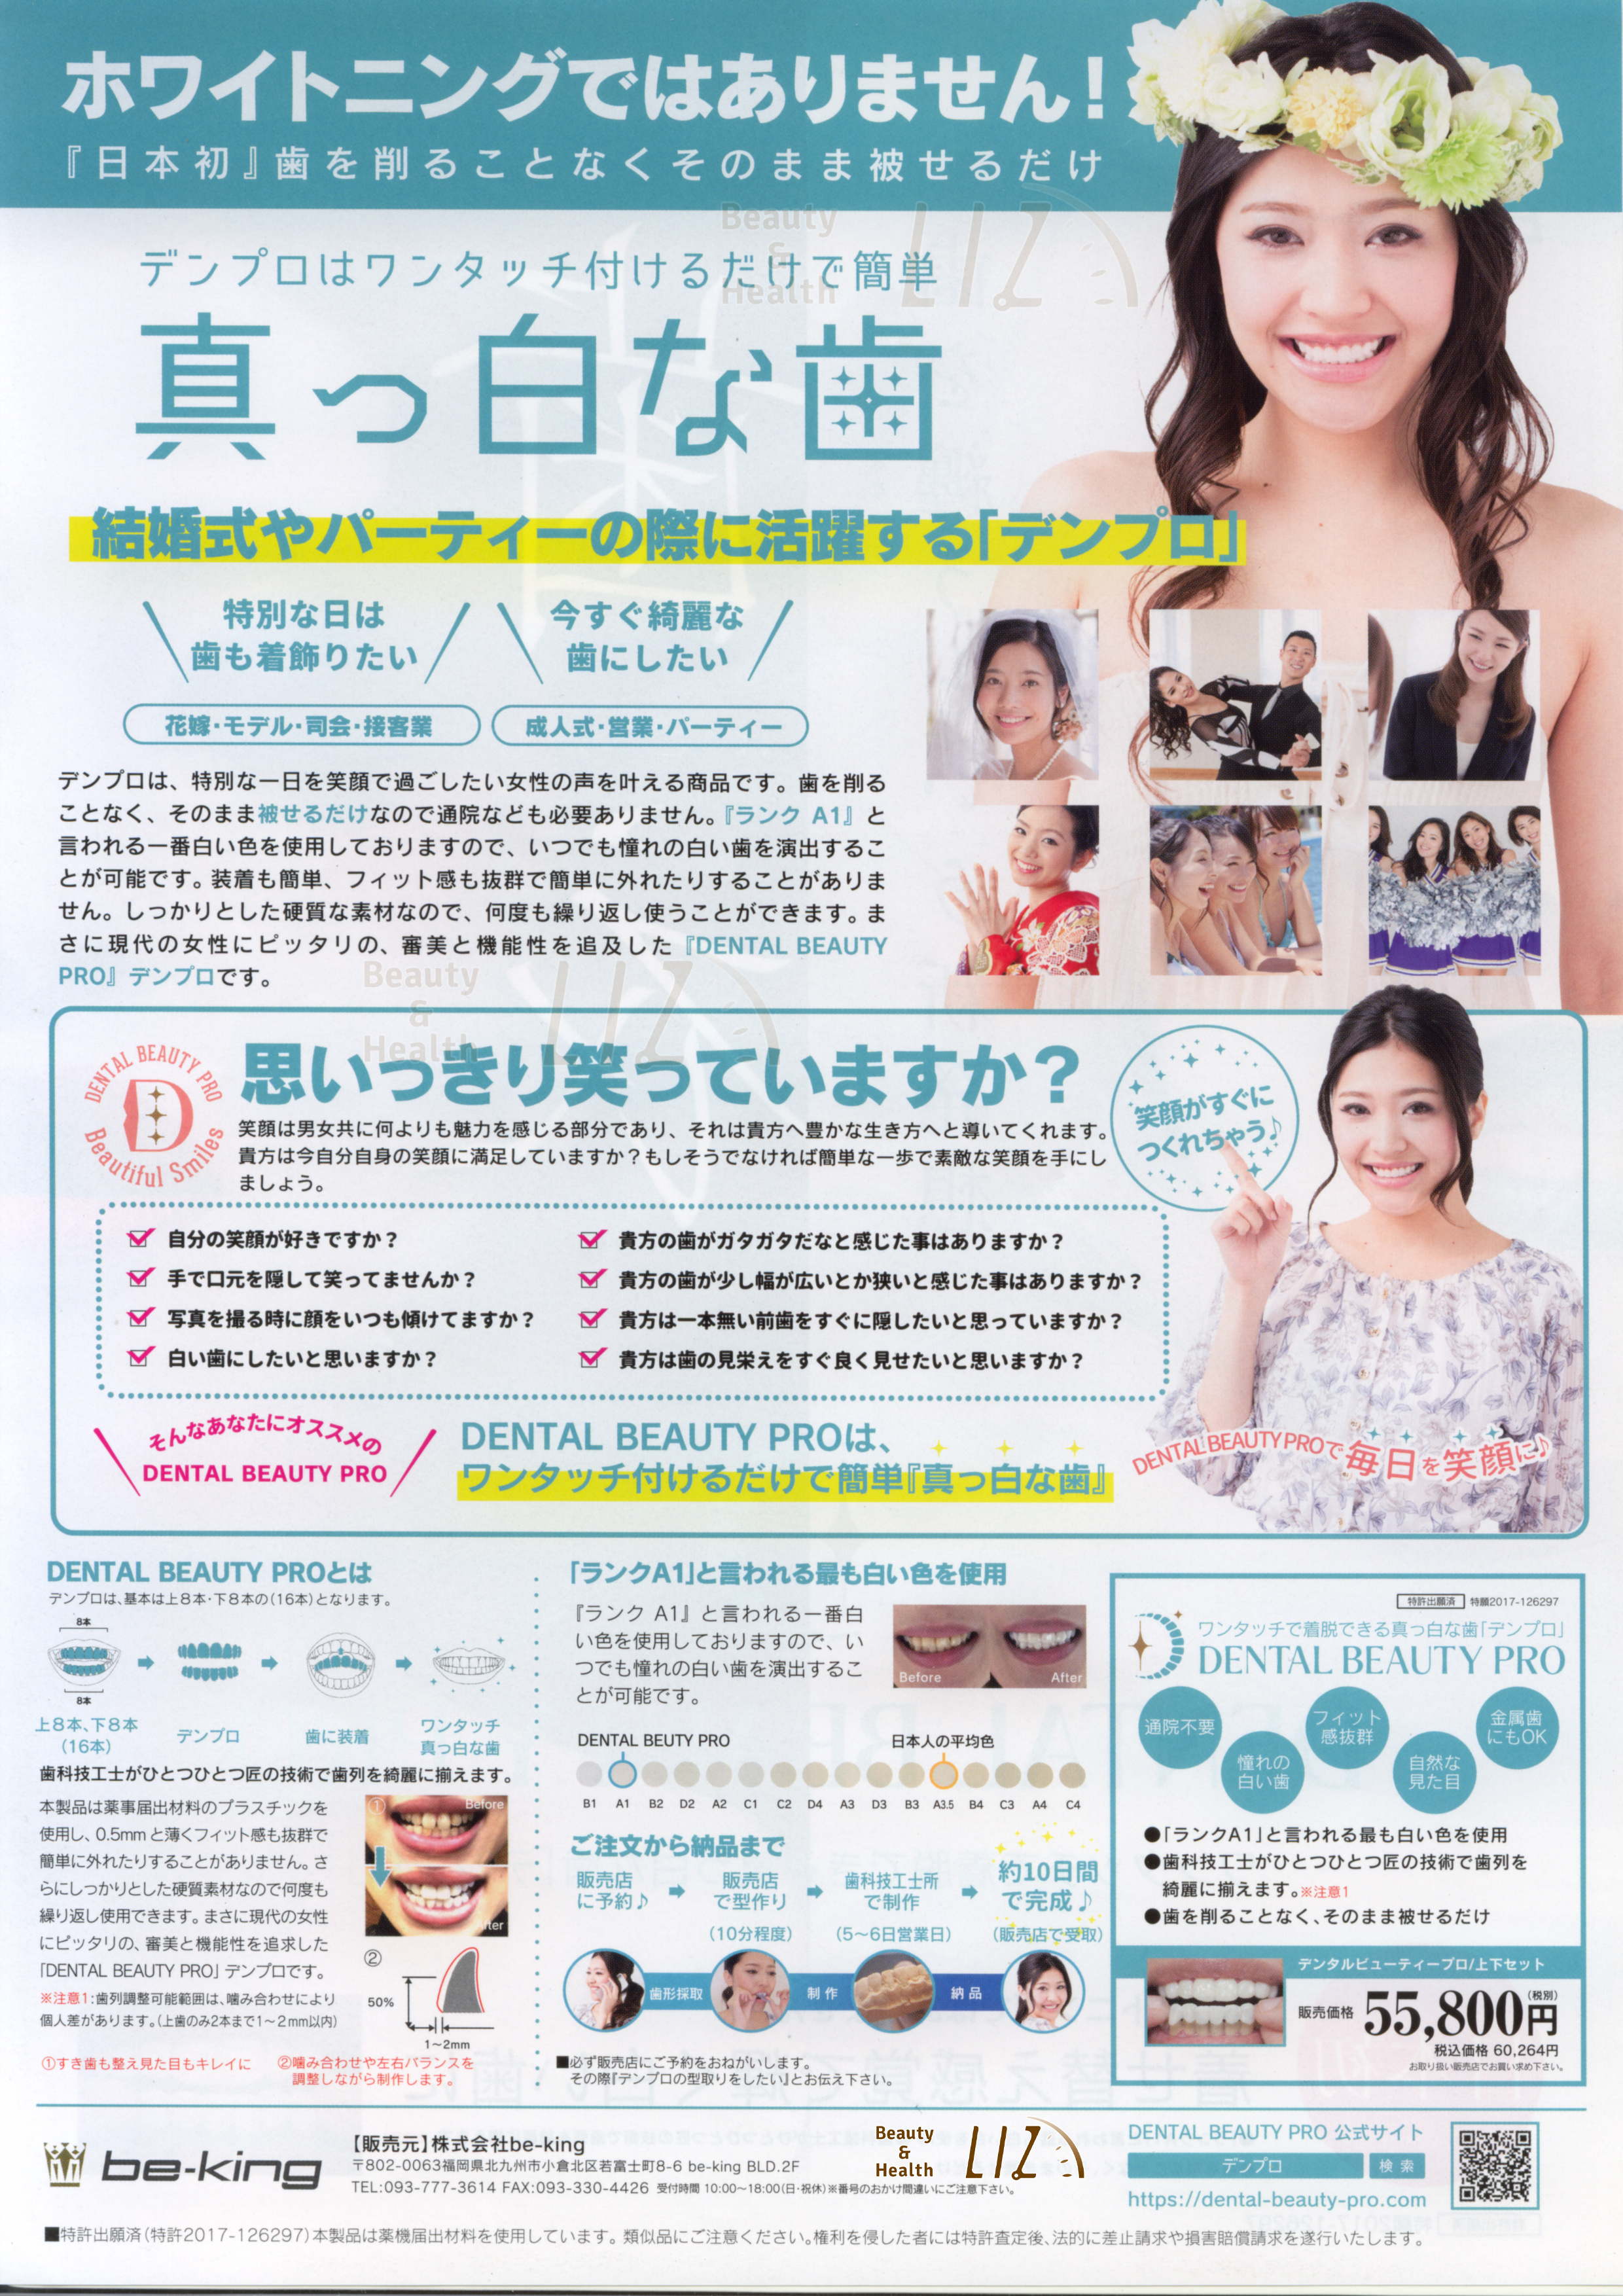 Beauty & Health LIZ 歯衣 DENTAL BEAUTY PRO